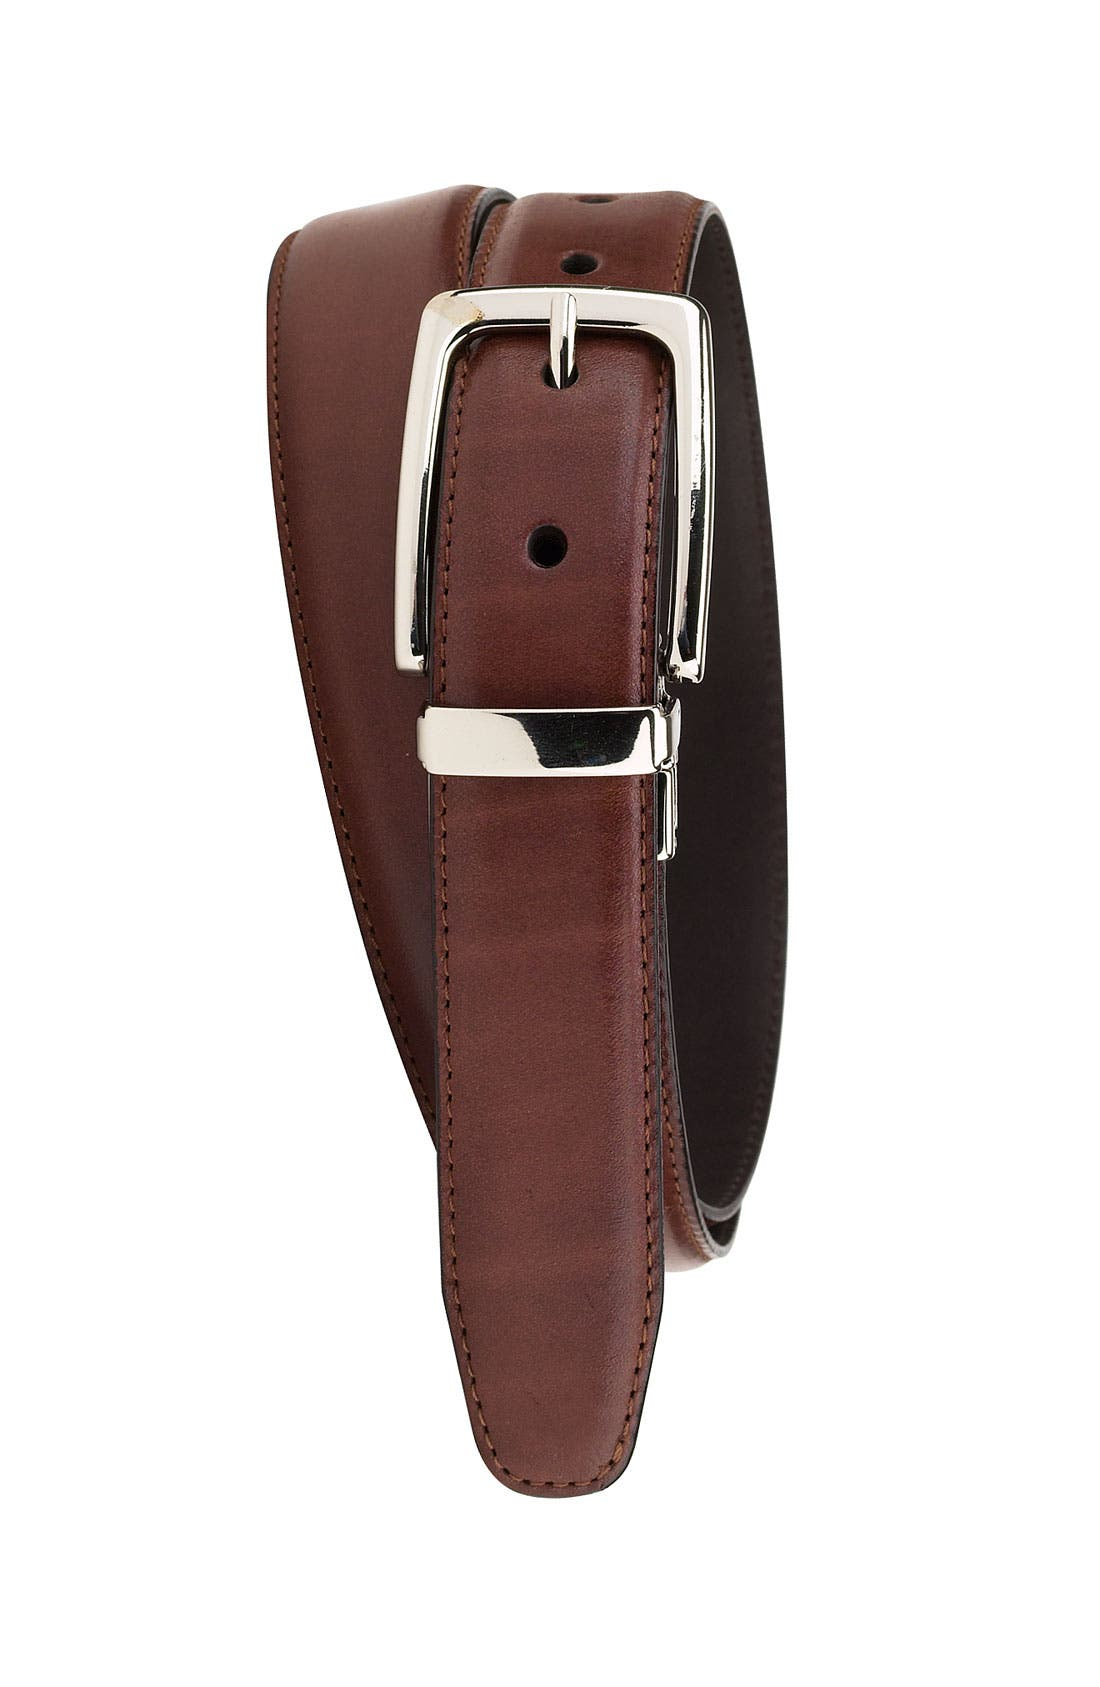 Main Image - Cole Haan 'Wheaton' Leather Belt.